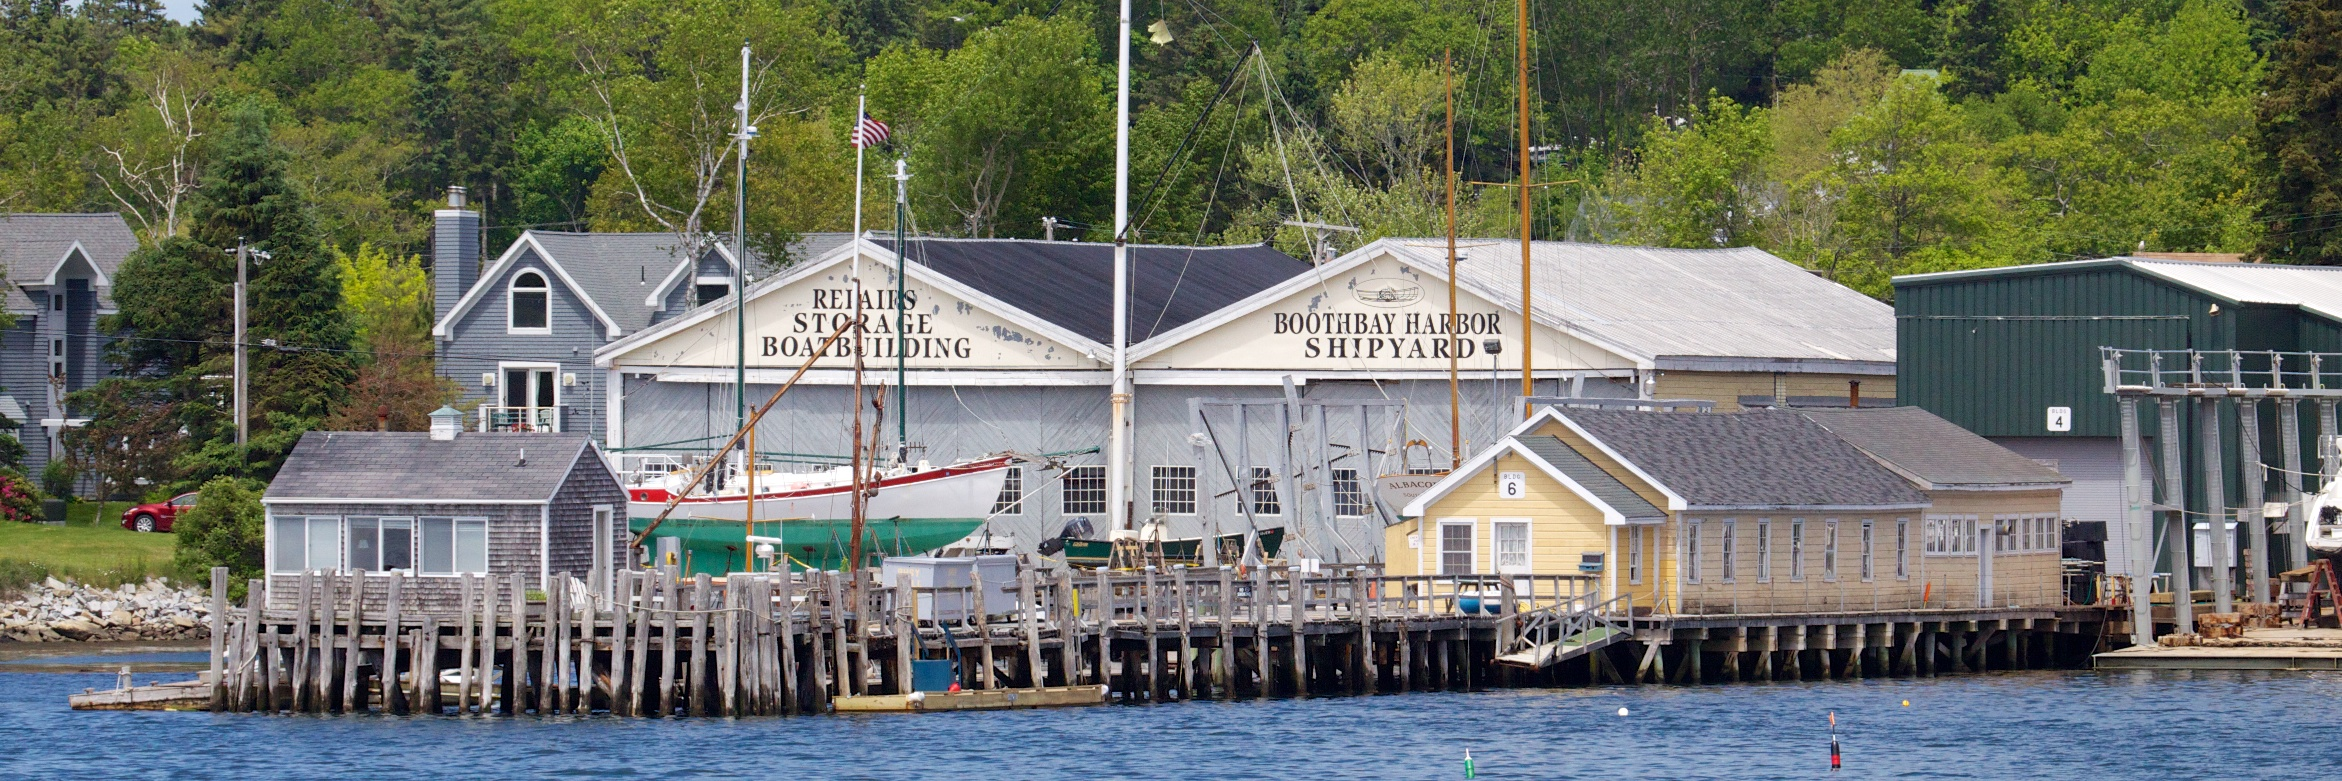 boothbay harbor single girls Boothbay harbor is a town in lincoln county, maine, united states the population was 2,165 at the 2010 census during summer months, the entire boothbay harbor.